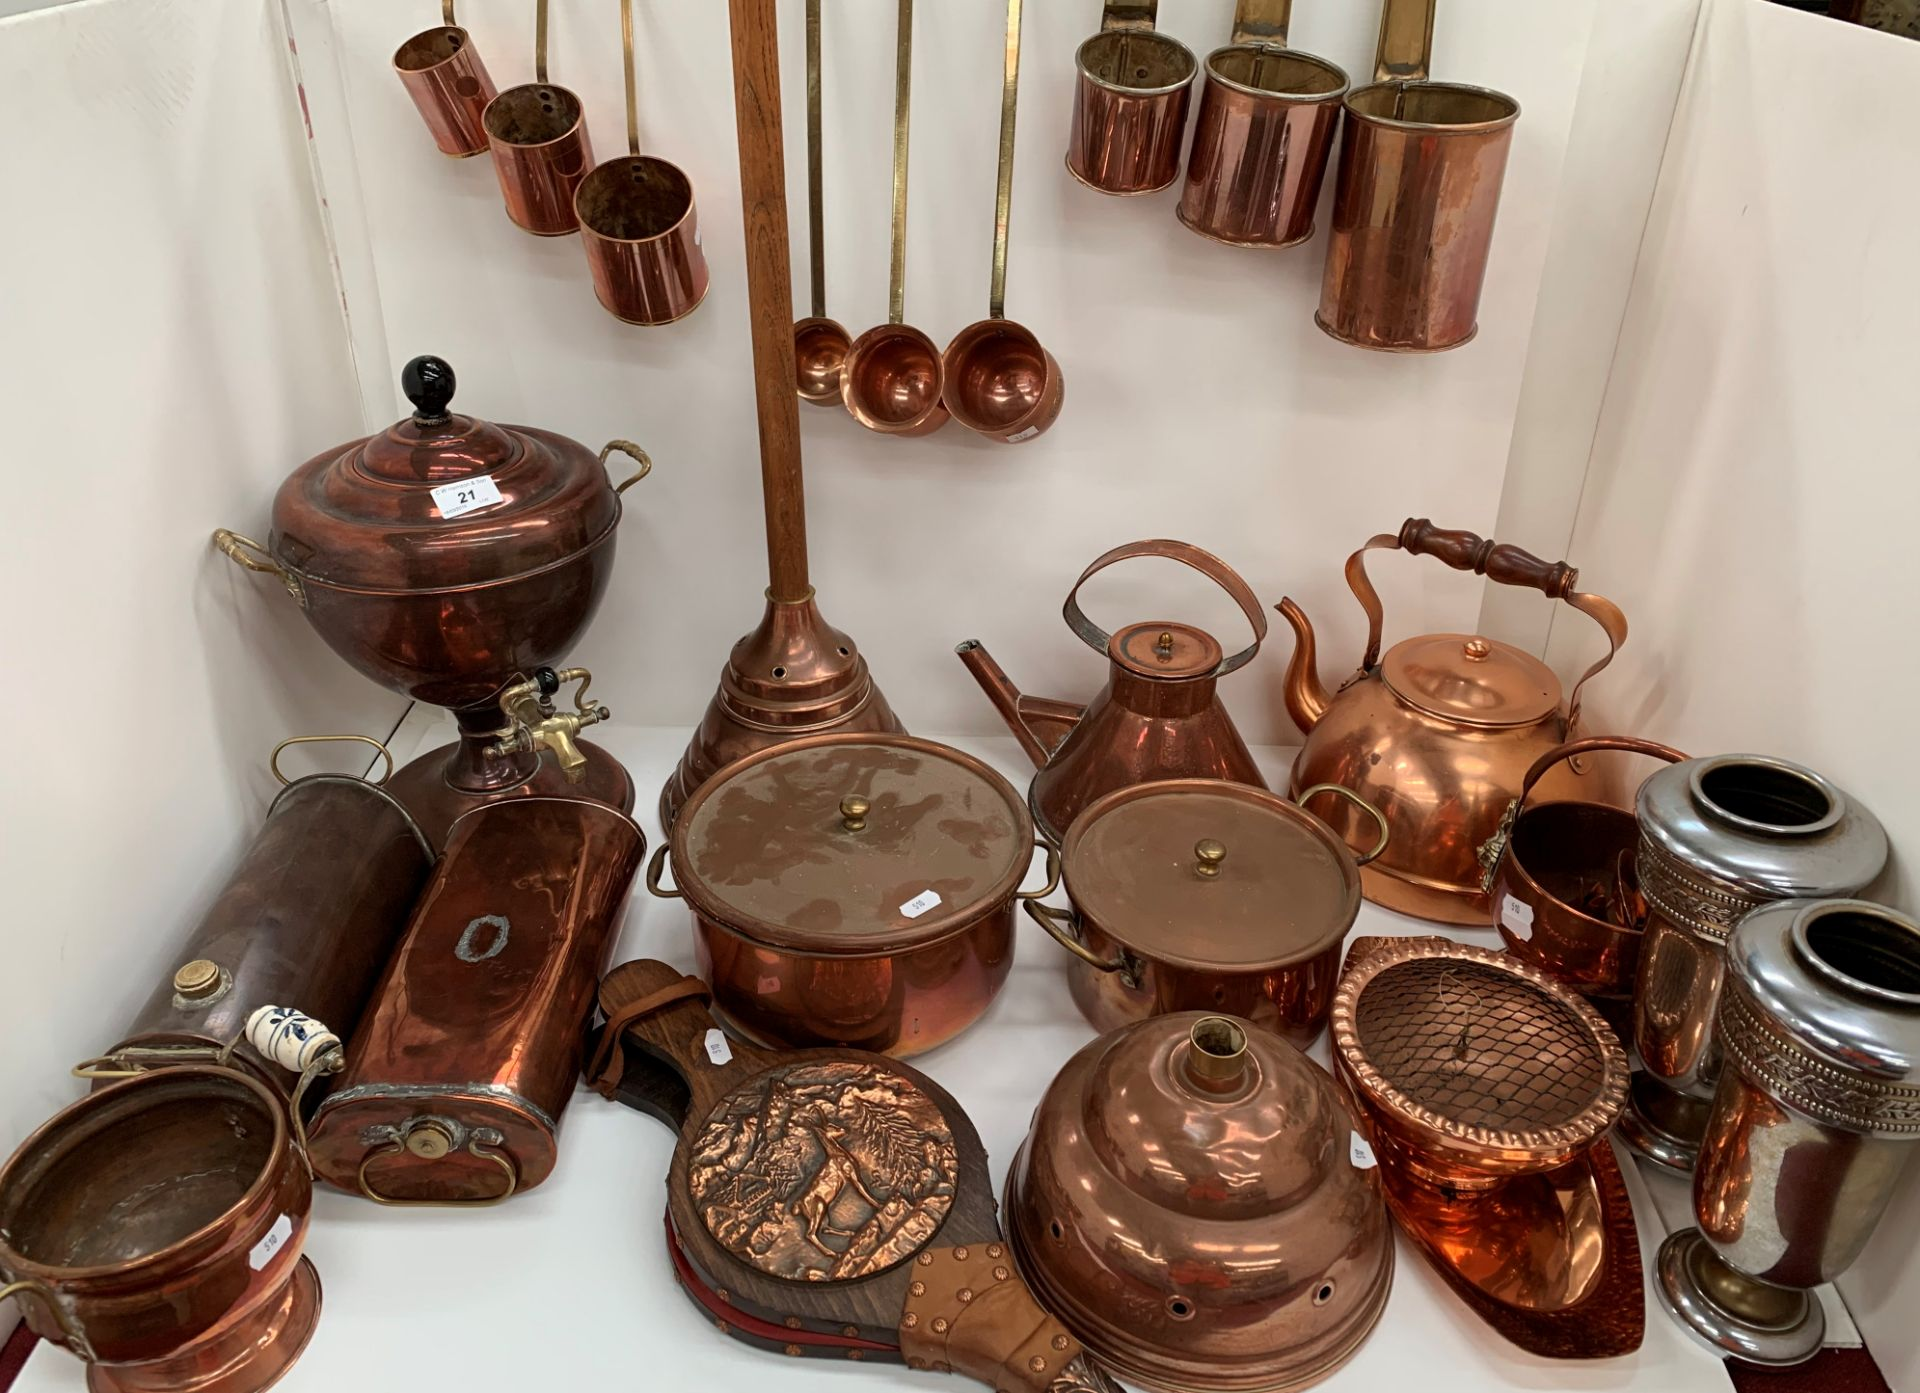 Lot 21 - Contents to two boxes - large quantity of copper kitchenware, samovar, kettles, ale mugs,